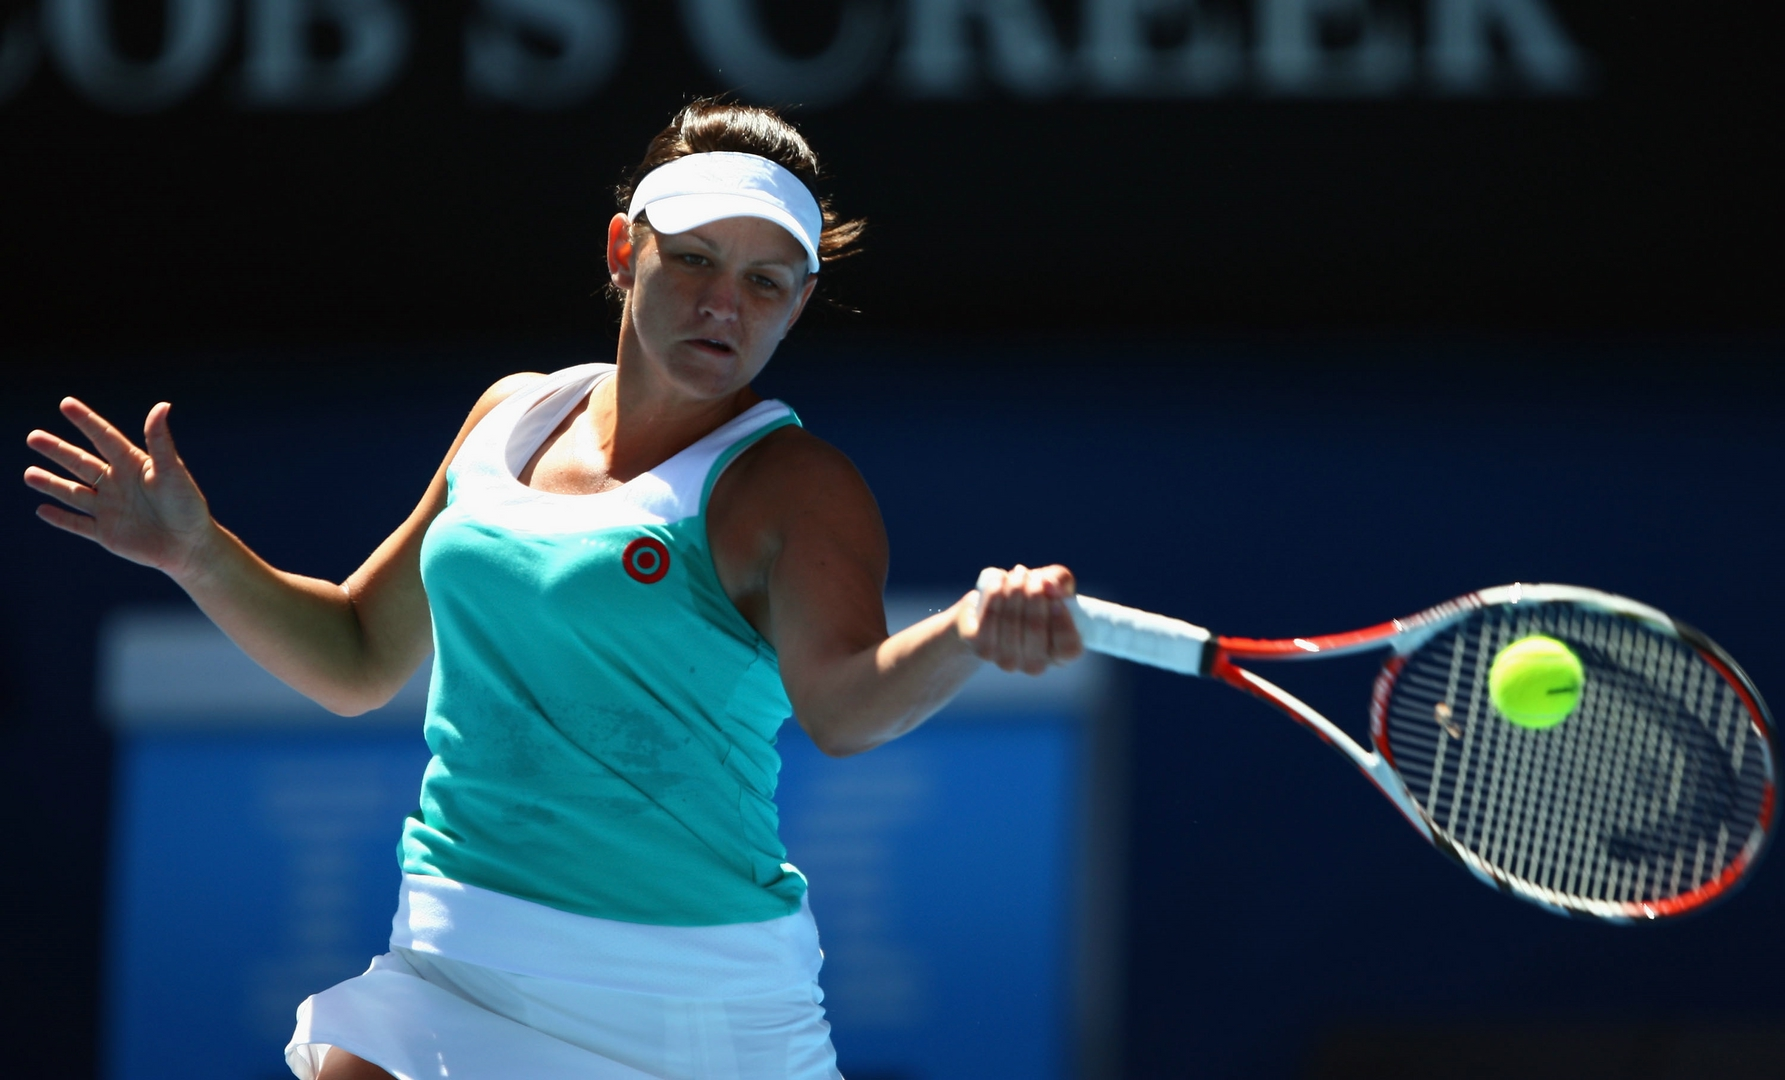 Thirty-three-year-old Australian Casey Dellacqua has announced her retirement from professional tennis